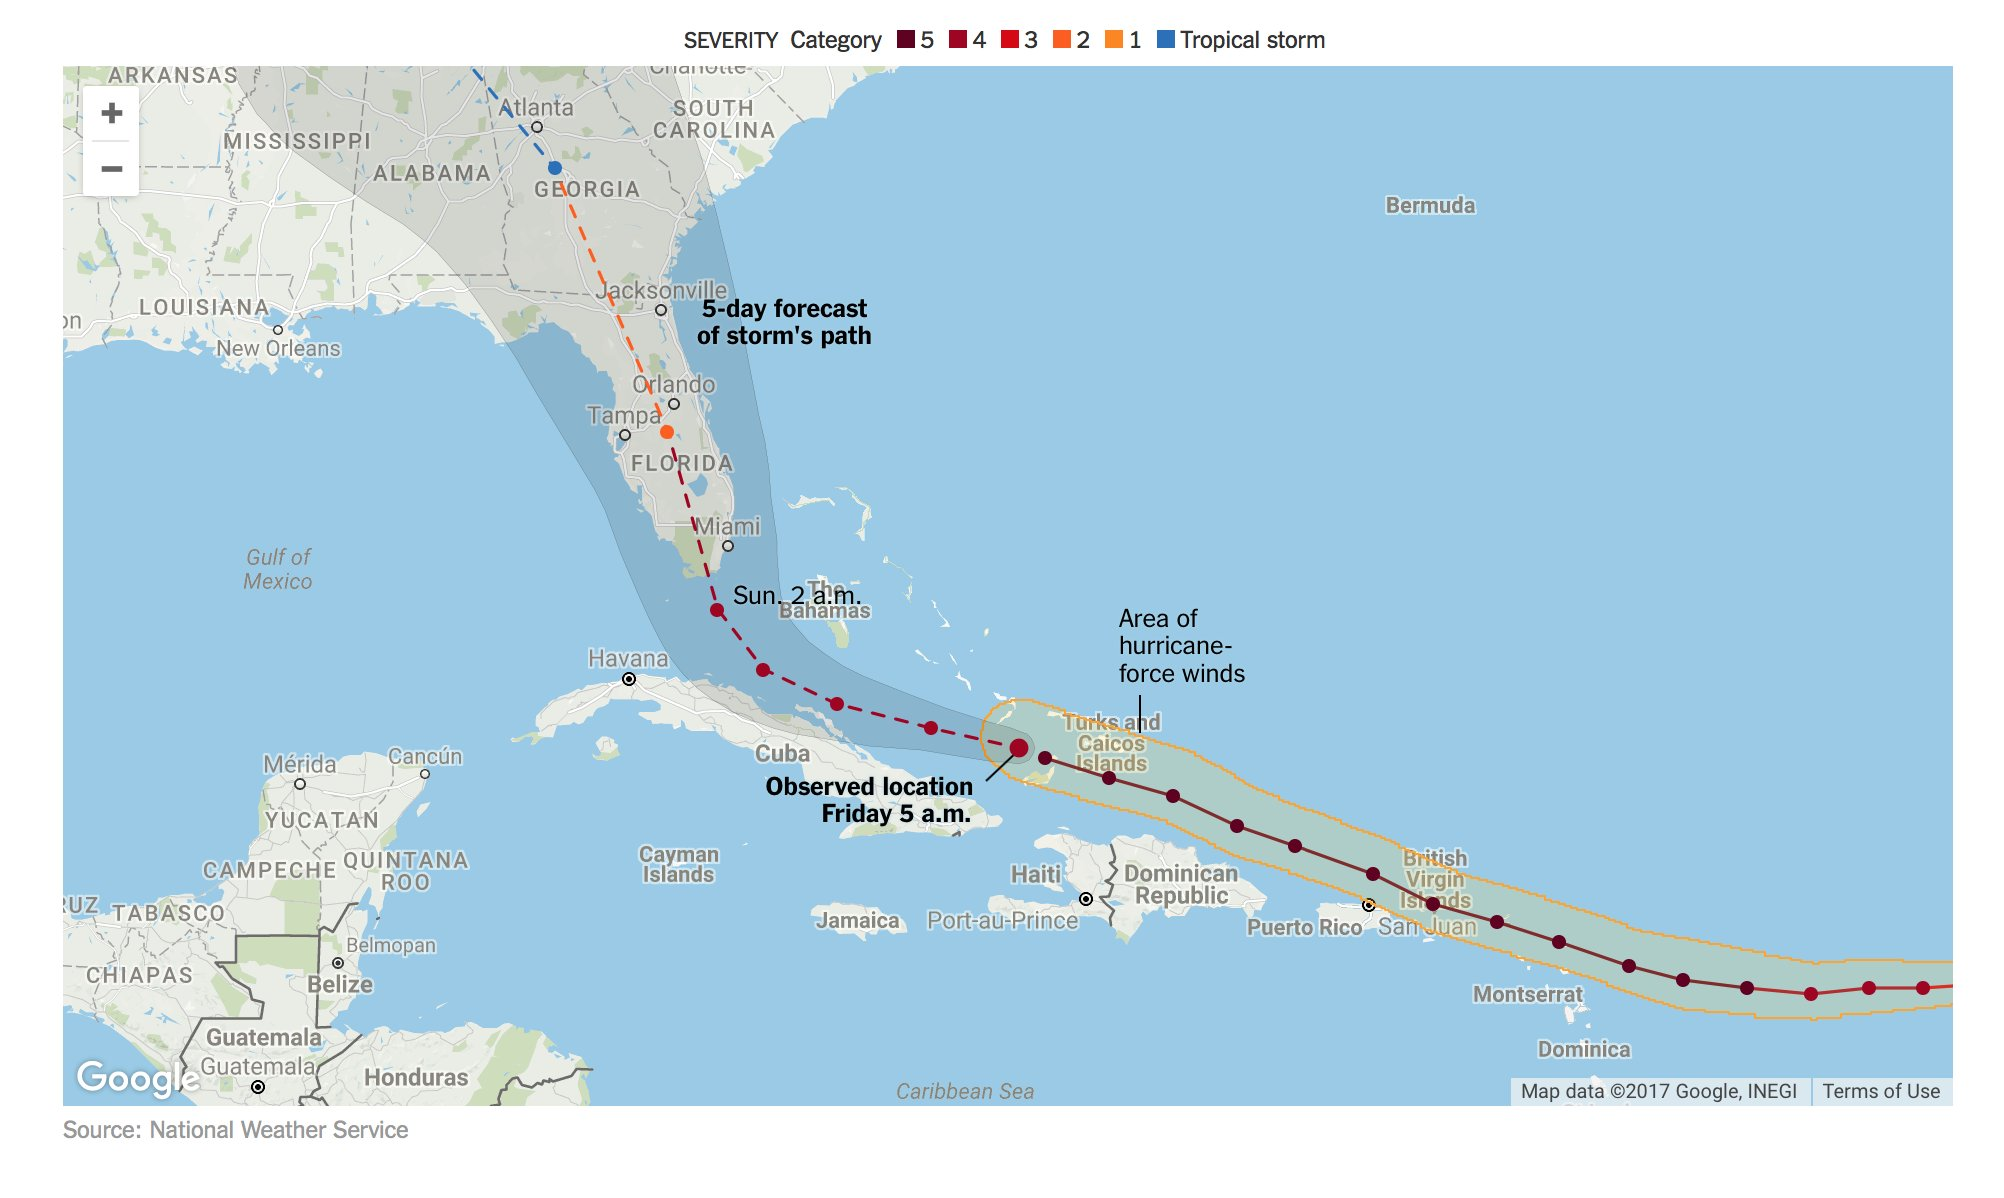 Maps: Tracking the path of Hurricane Irma https://t.co/qTyeBM1SYY https://t.co/9UTTQyzx5L